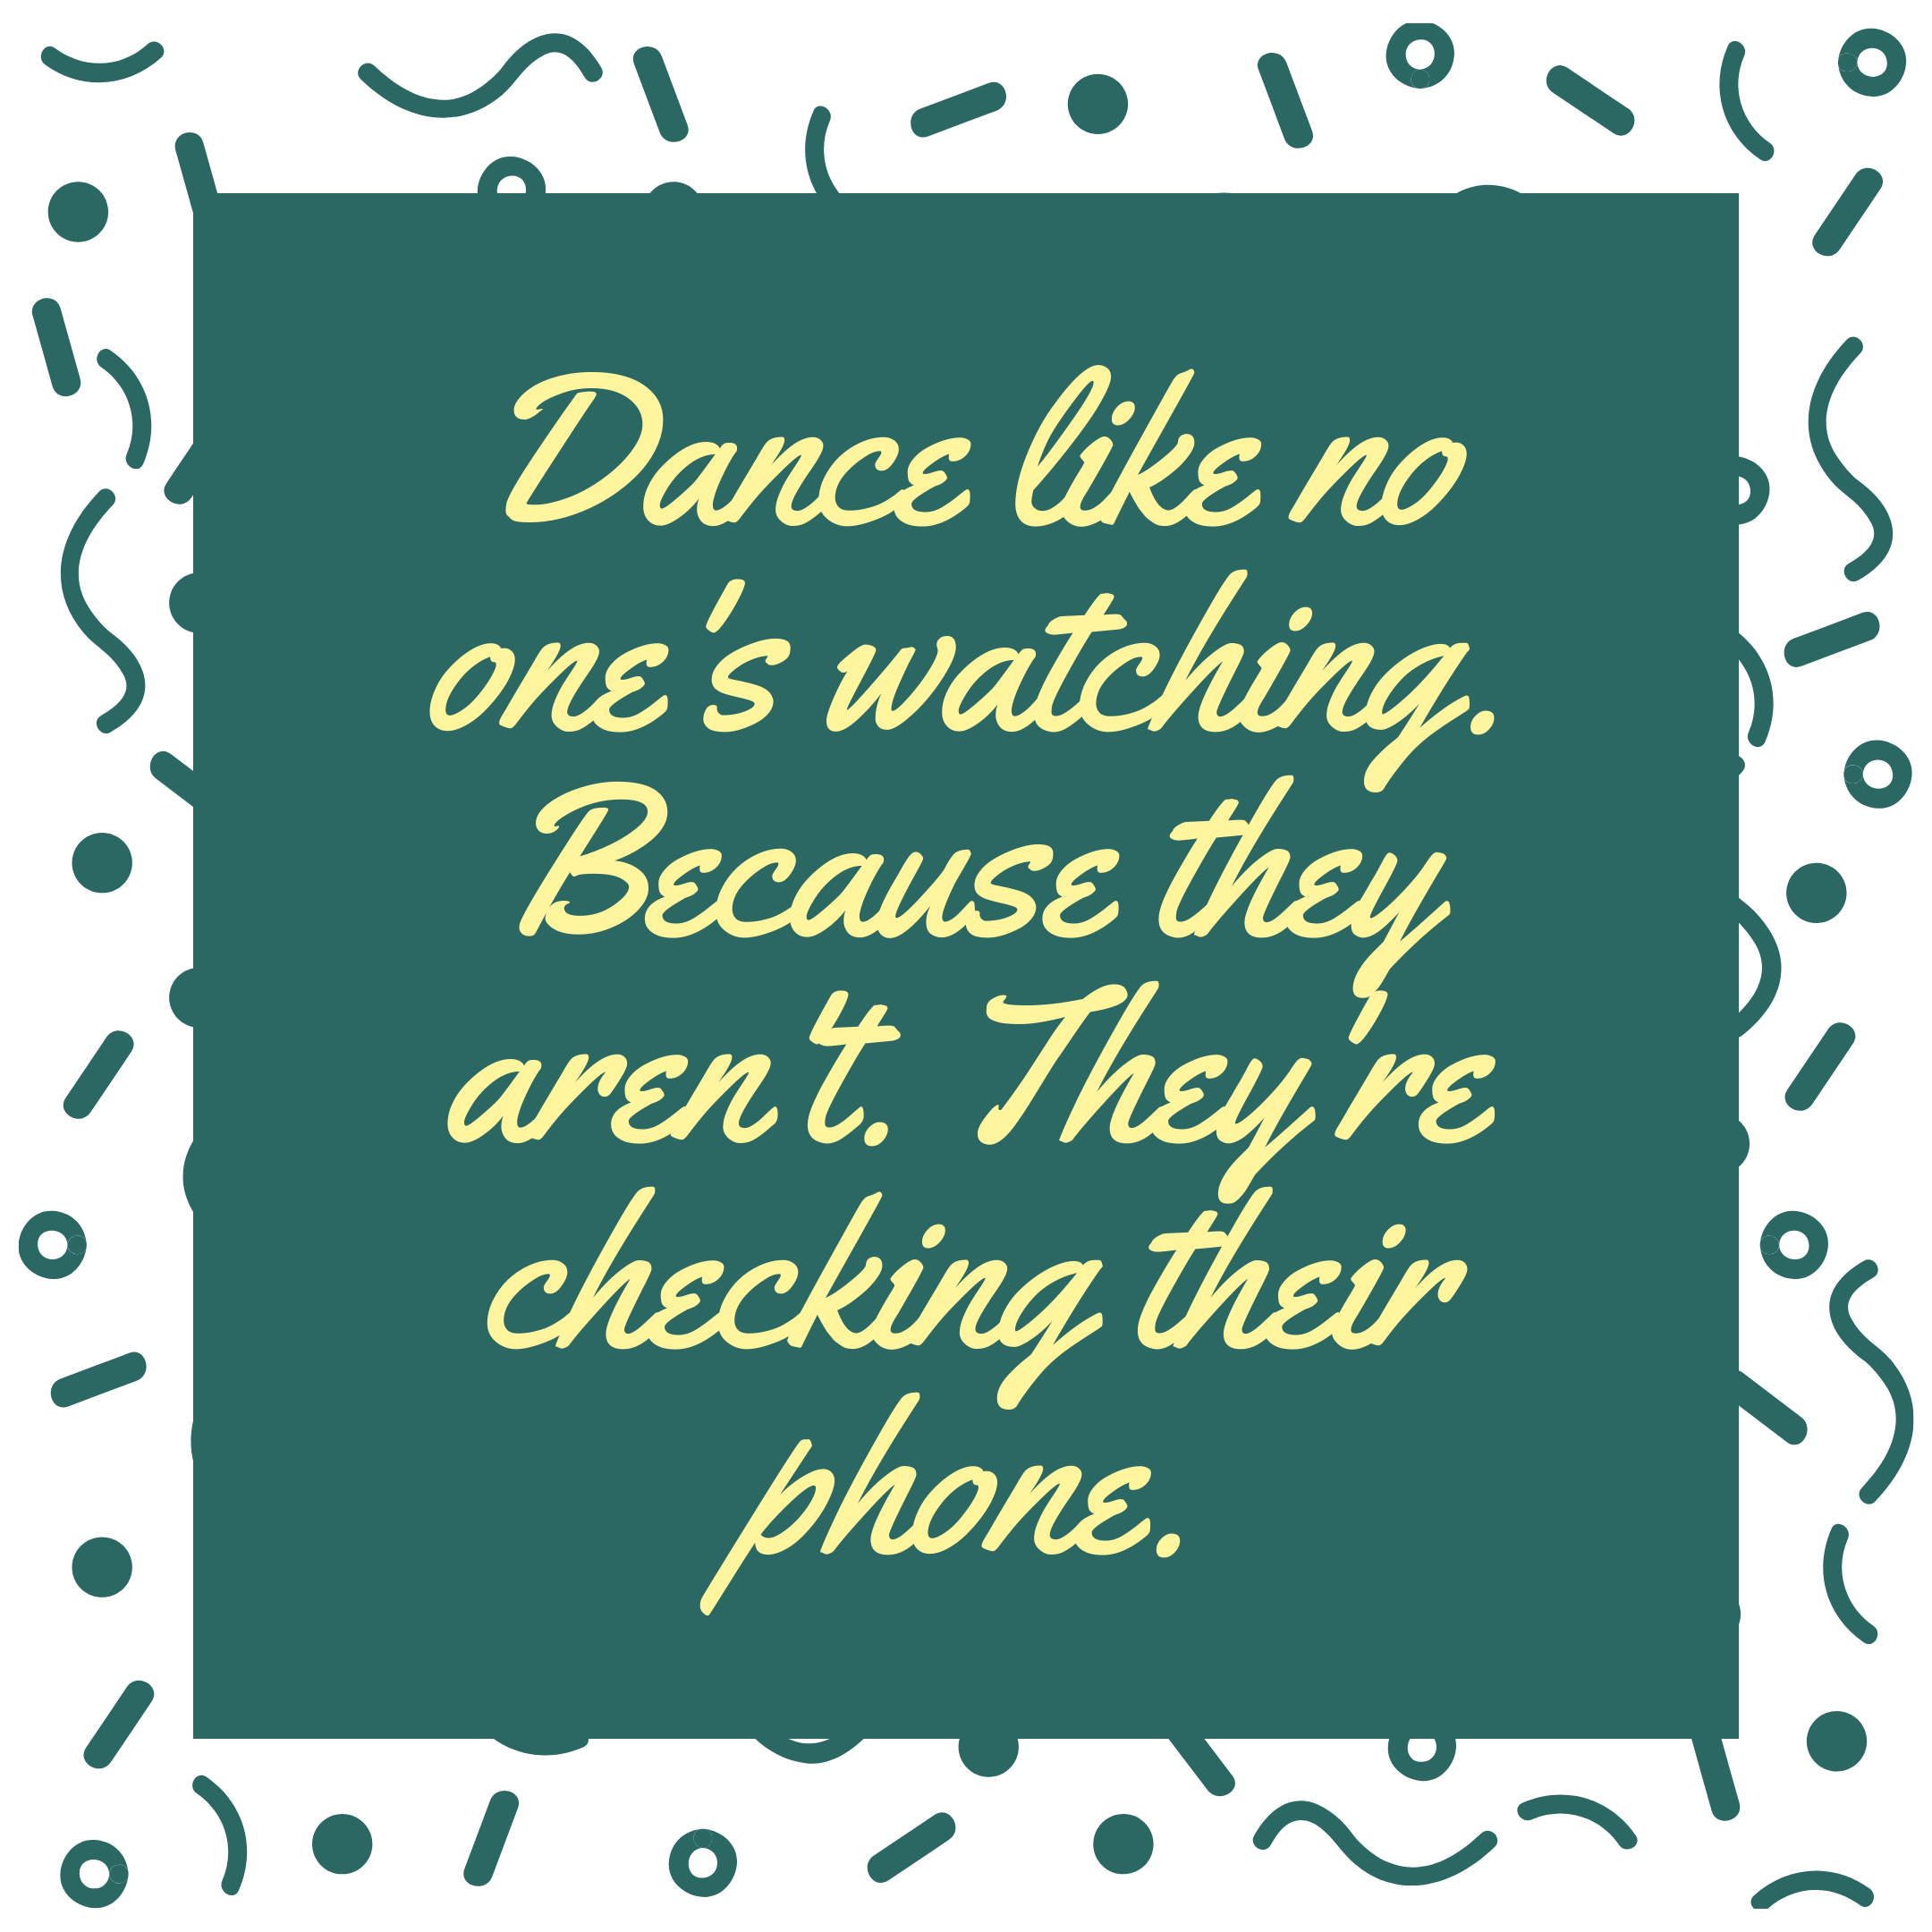 Dance like no one's watching. Because they aren't. They're checking their phone.